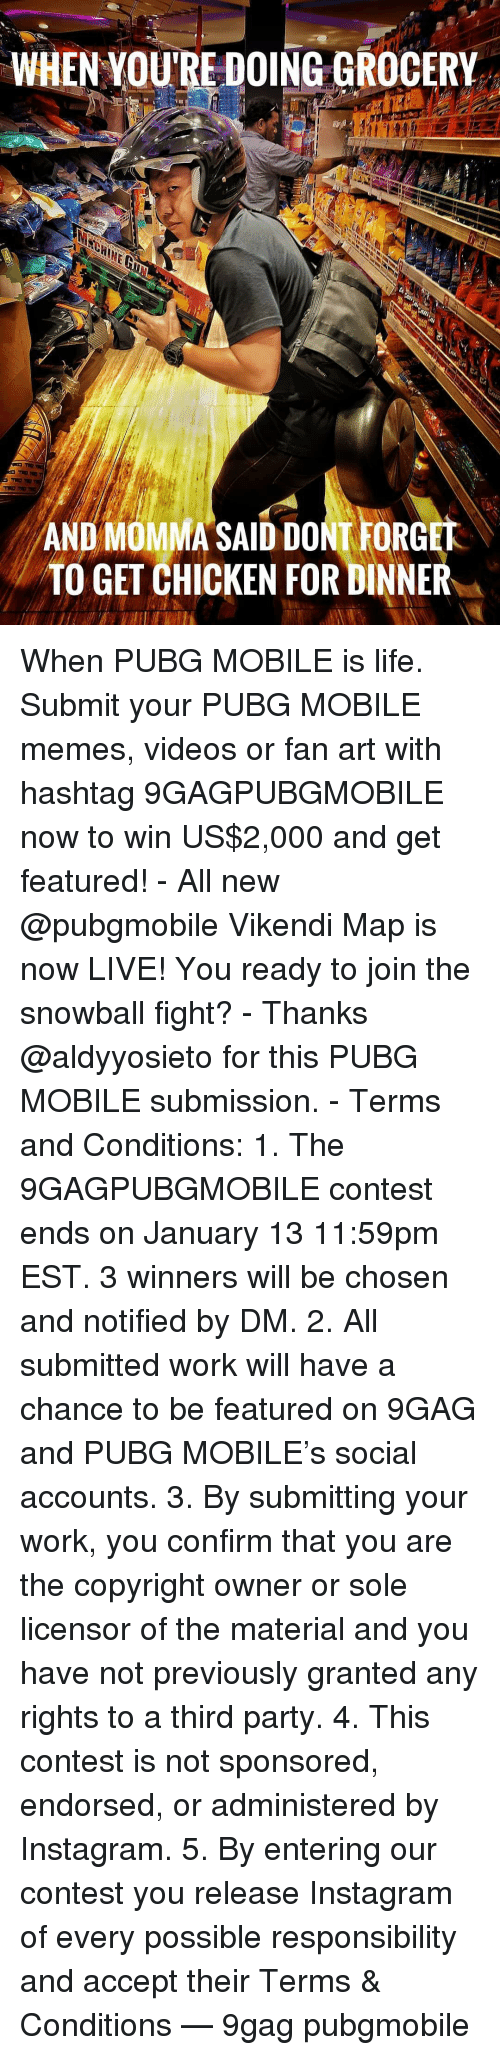 9gag, Instagram, and Life: WHEN YOU RE DOING GROCERY  AND MOMMA SAID DONT FORGE  TO GET CHICKEN FOR DINNER When PUBG MOBILE is life. Submit your PUBG MOBILE memes, videos or fan art with hashtag 9GAGPUBGMOBILE now to win US$2,000 and get featured! - All new @pubgmobile Vikendi Map is now LIVE! You ready to join the snowball fight? - Thanks @aldyyosieto for this PUBG MOBILE submission. - Terms and Conditions: 1. The 9GAGPUBGMOBILE contest ends on January 13 11:59pm EST. 3 winners will be chosen and notified by DM. 2. All submitted work will have a chance to be featured on 9GAG and PUBG MOBILE's social accounts. 3. By submitting your work, you confirm that you are the copyright owner or sole licensor of the material and you have not previously granted any rights to a third party. 4. This contest is not sponsored, endorsed, or administered by Instagram. 5. By entering our contest you release Instagram of every possible responsibility and accept their Terms & Conditions — 9gag pubgmobile